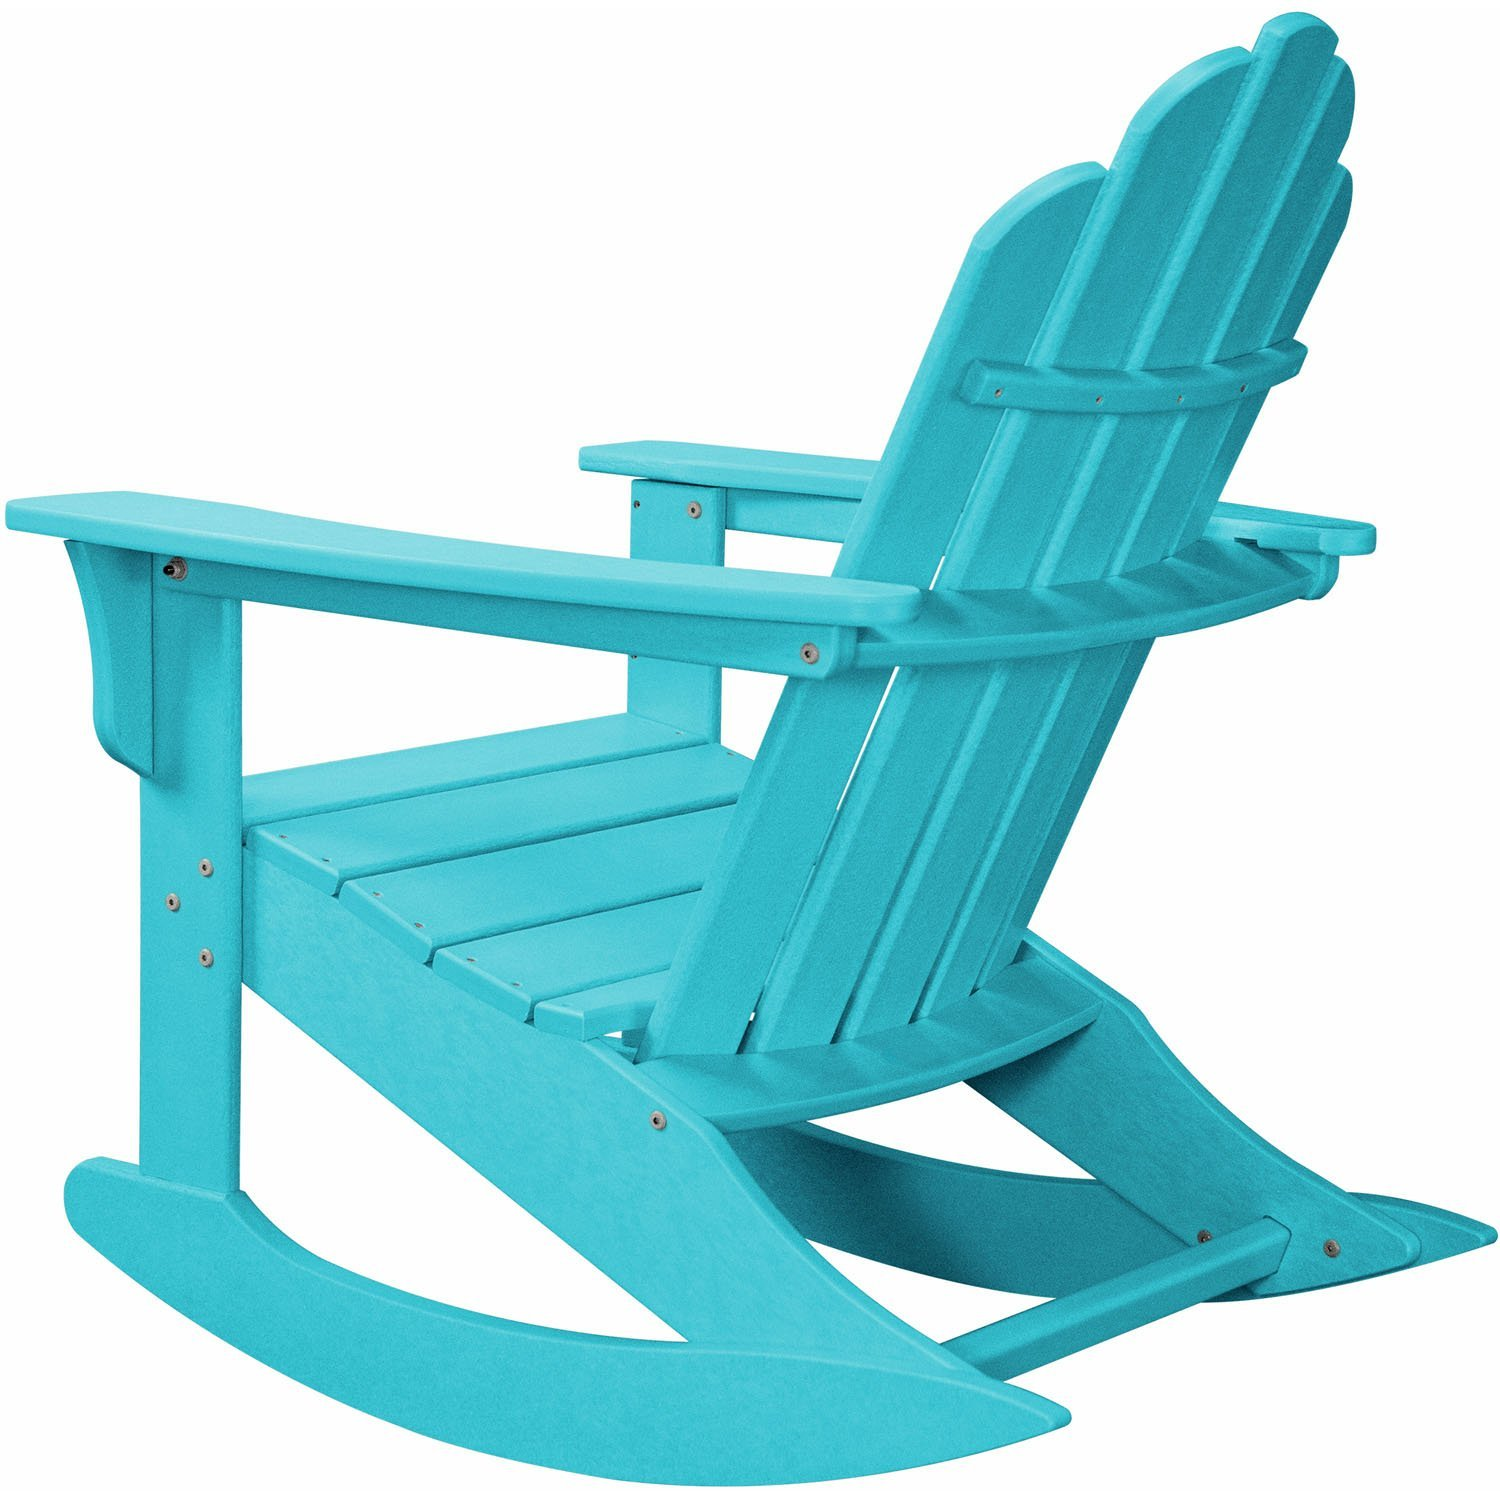 plans pertaining chairs rocking property astounding the set model and gallery woven chair window backyard ro comfy pict plastic inexpensive of presidential wonderful recycled but polywood rocker simple beauty for impressive adirondack to